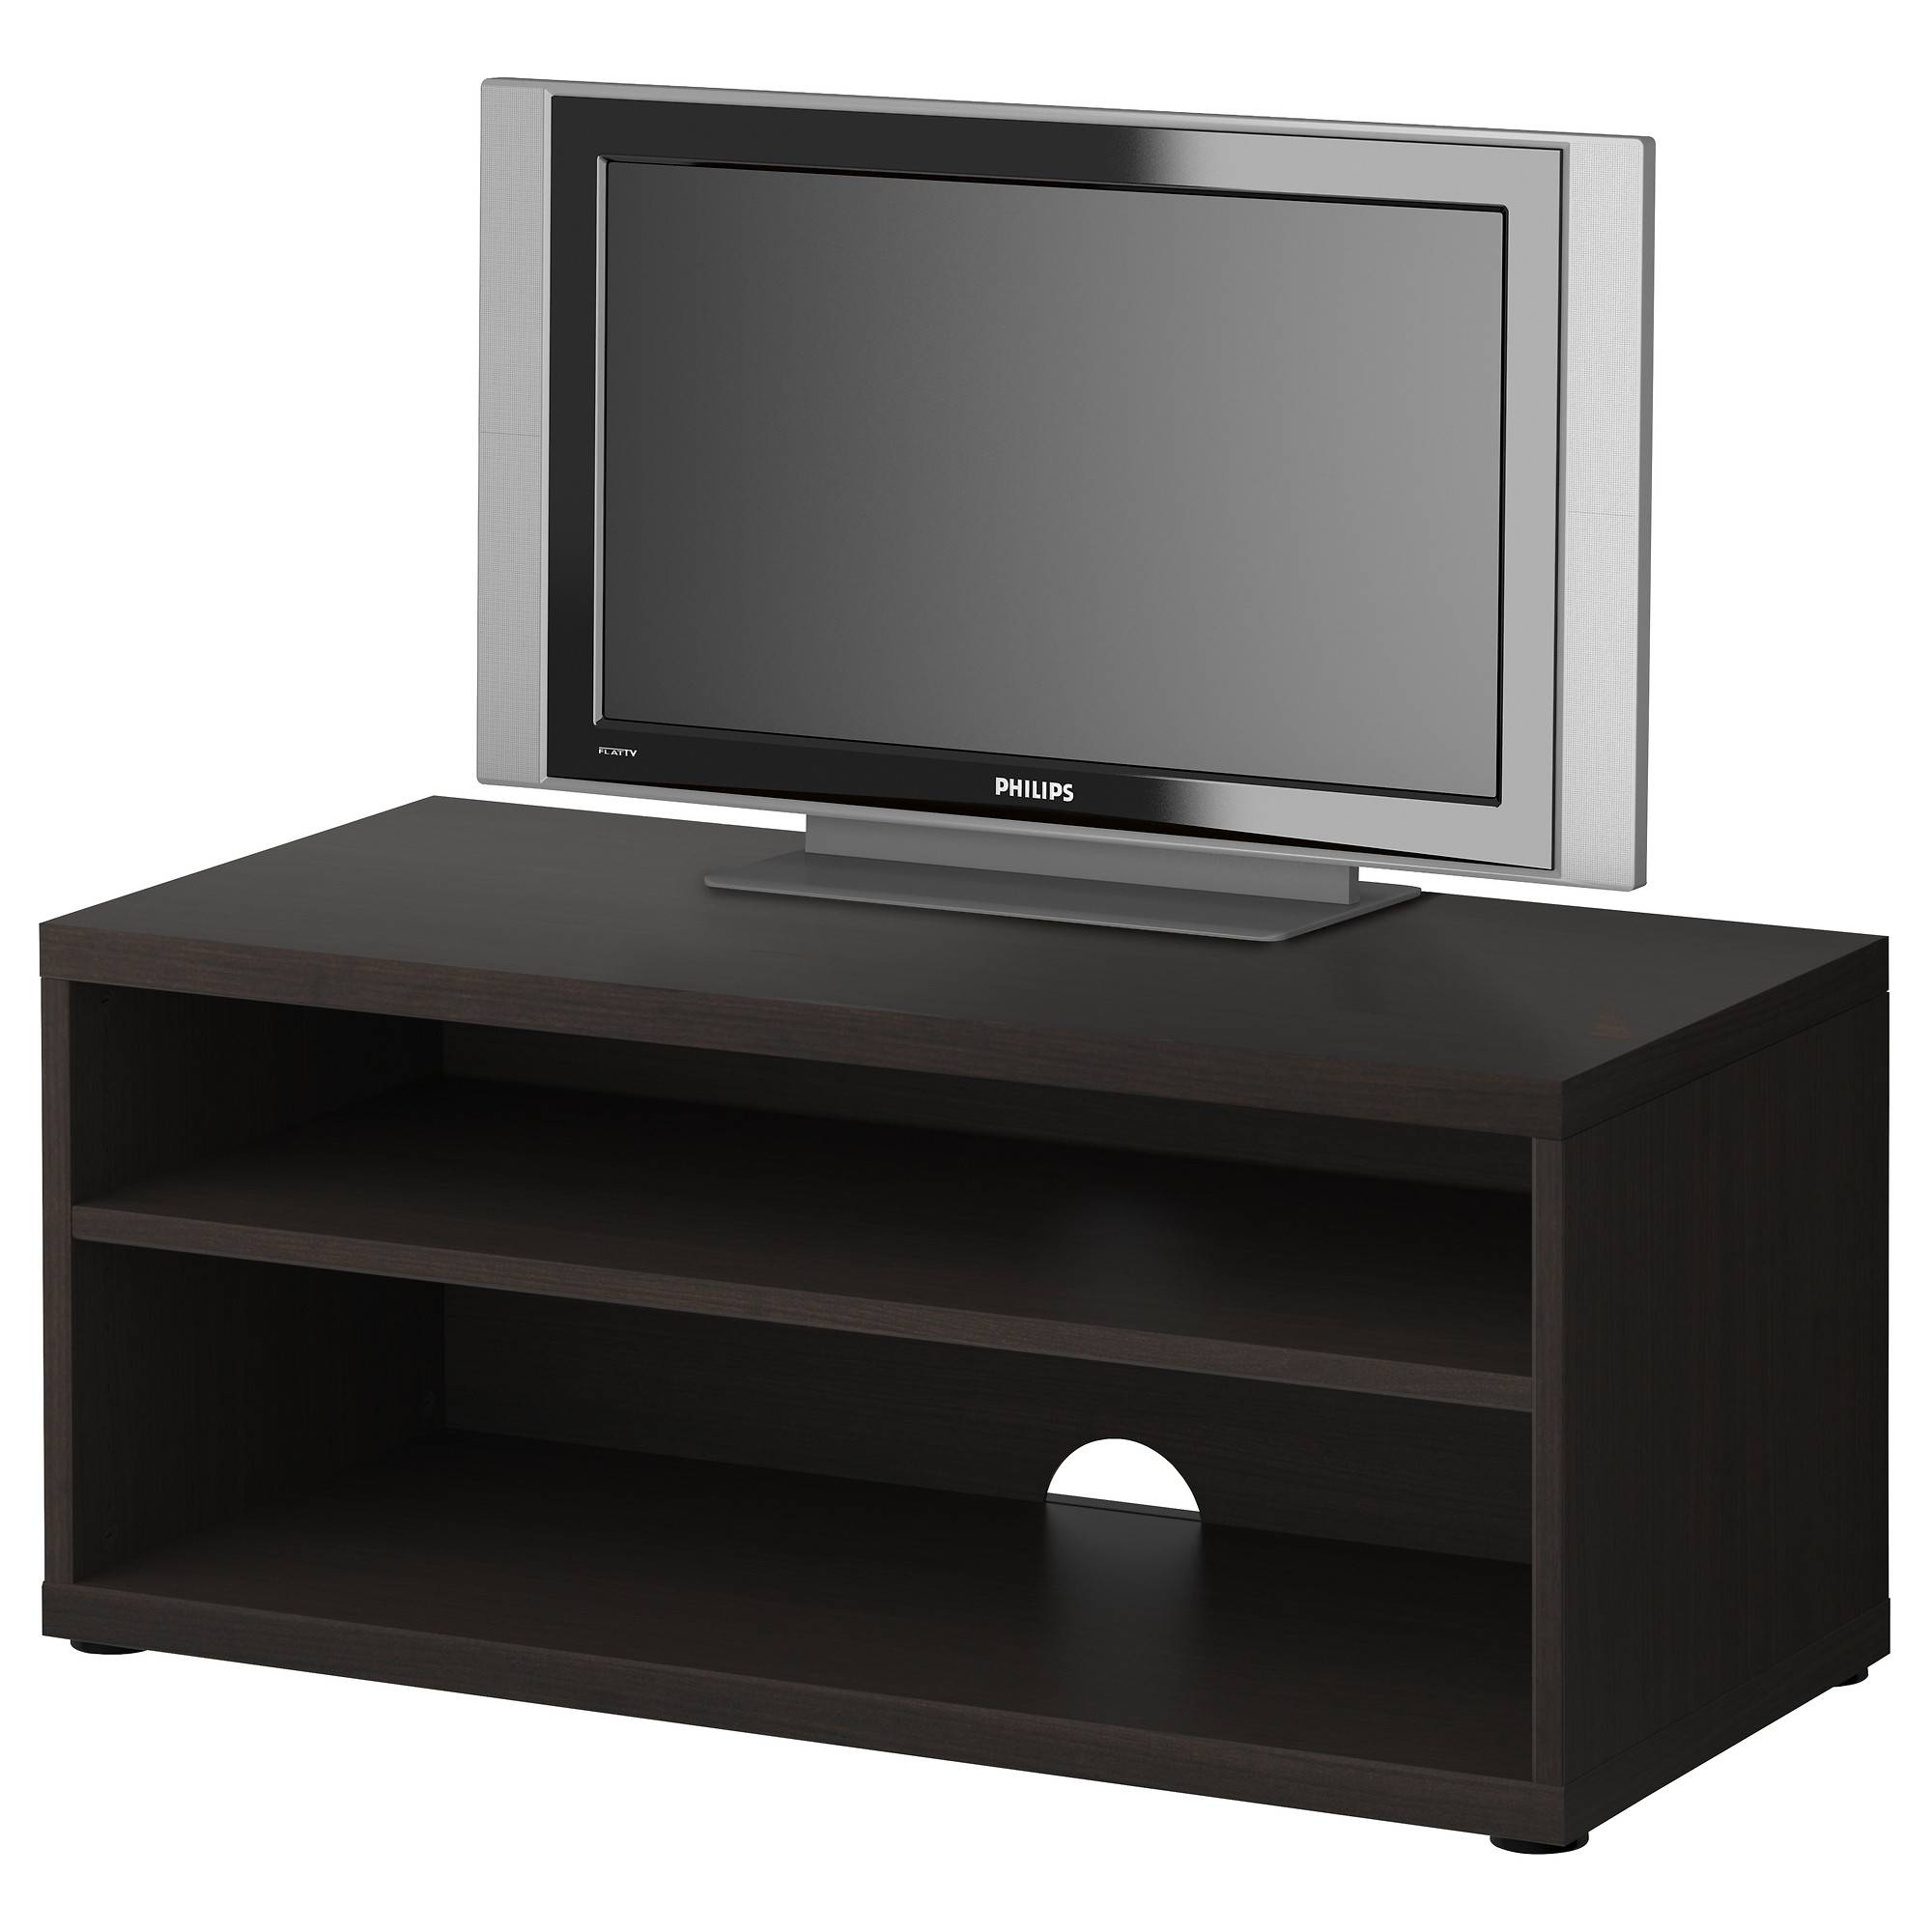 Tv Stands & Tv Units | Ikea in Curve Tv Stands (Image 12 of 15)